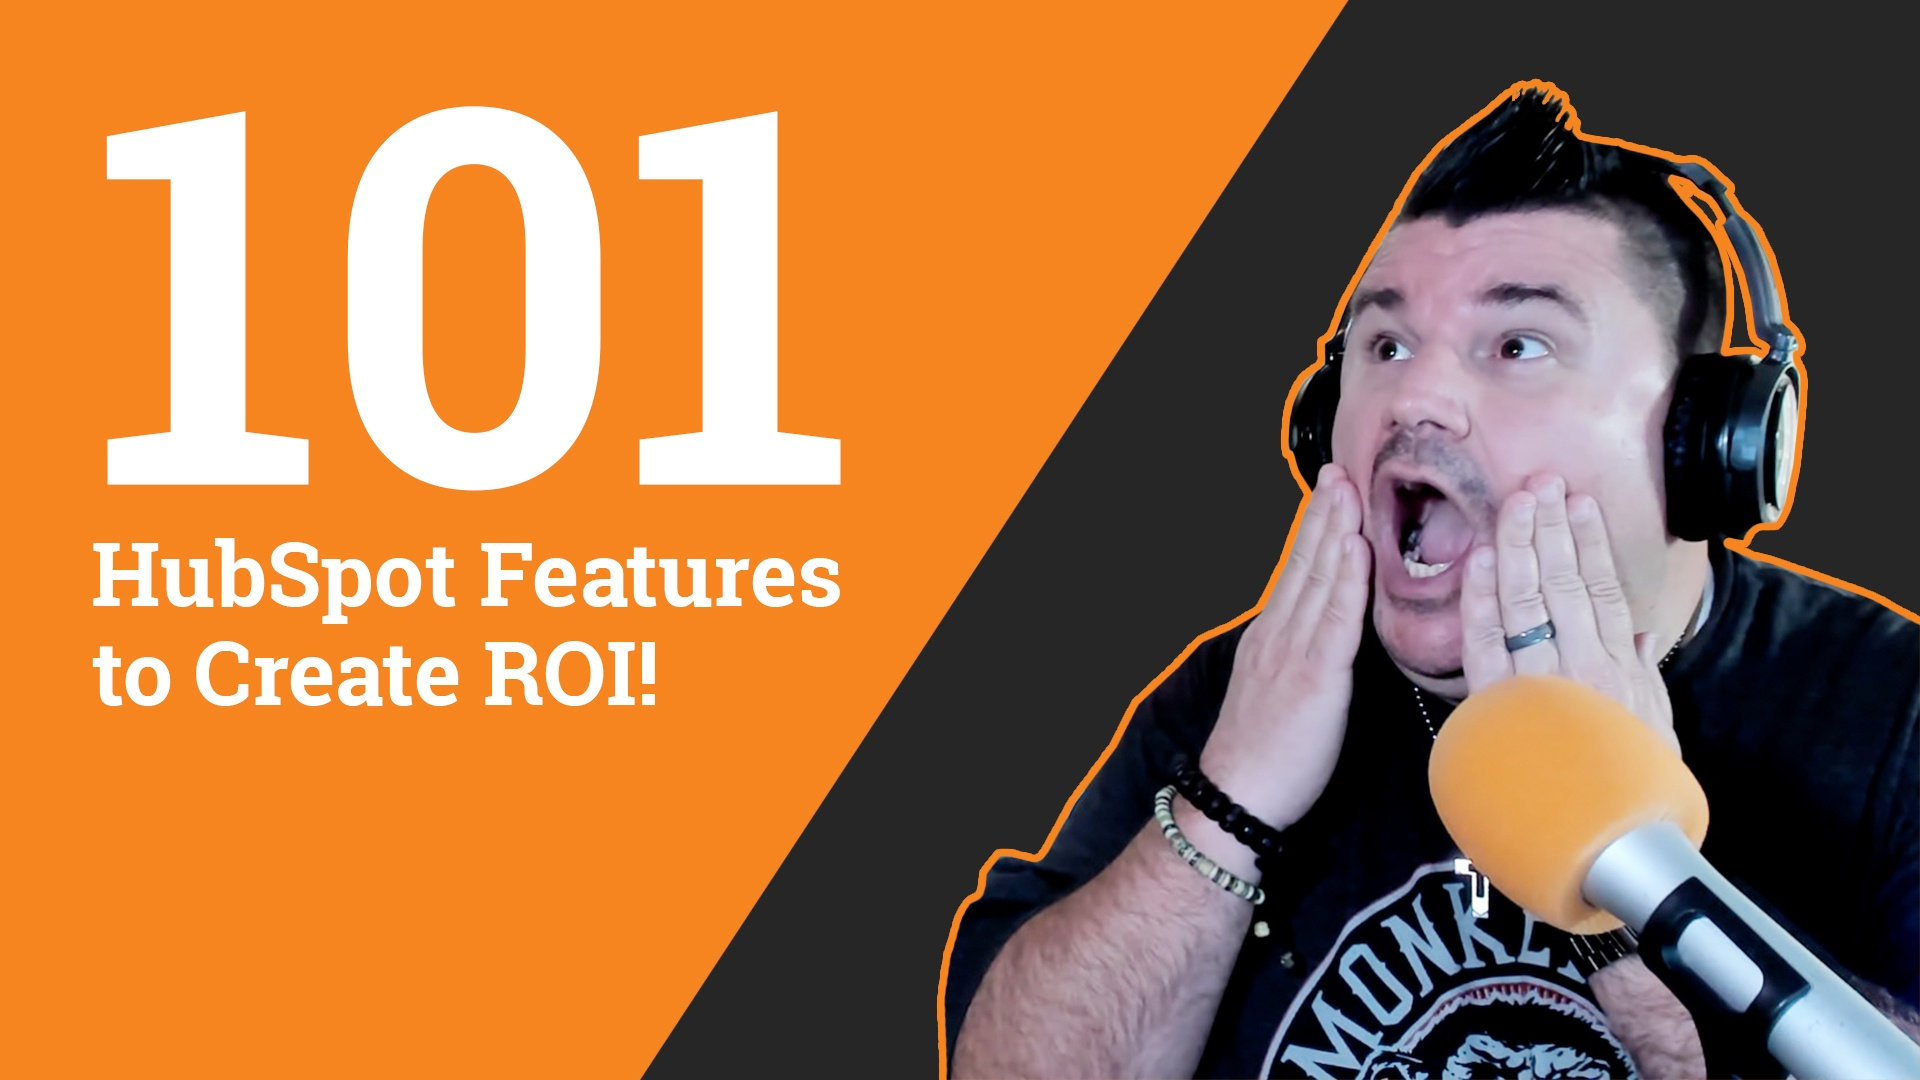 HubSpot Feature List: 101 Features to get the most ROI